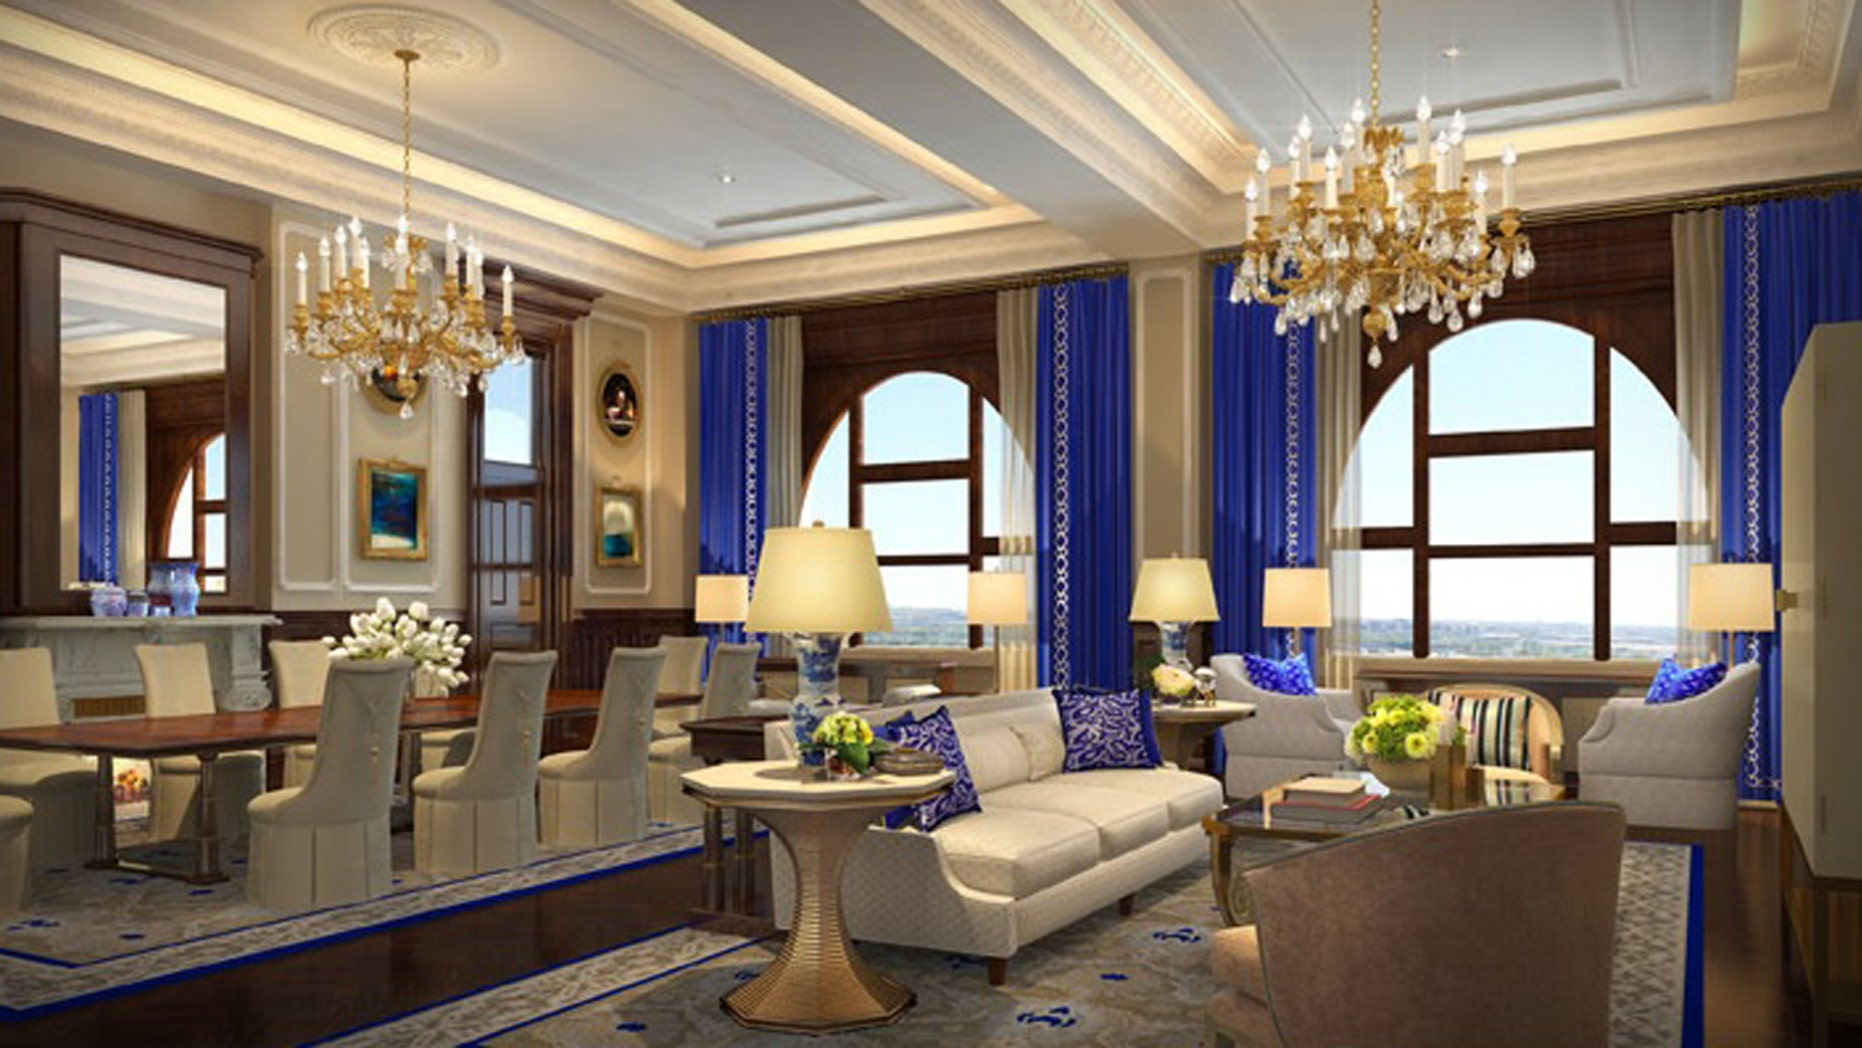 The largest suite at the new hotel is 6,300-square-feet and features a private Pennsylvania Avenue entrance.